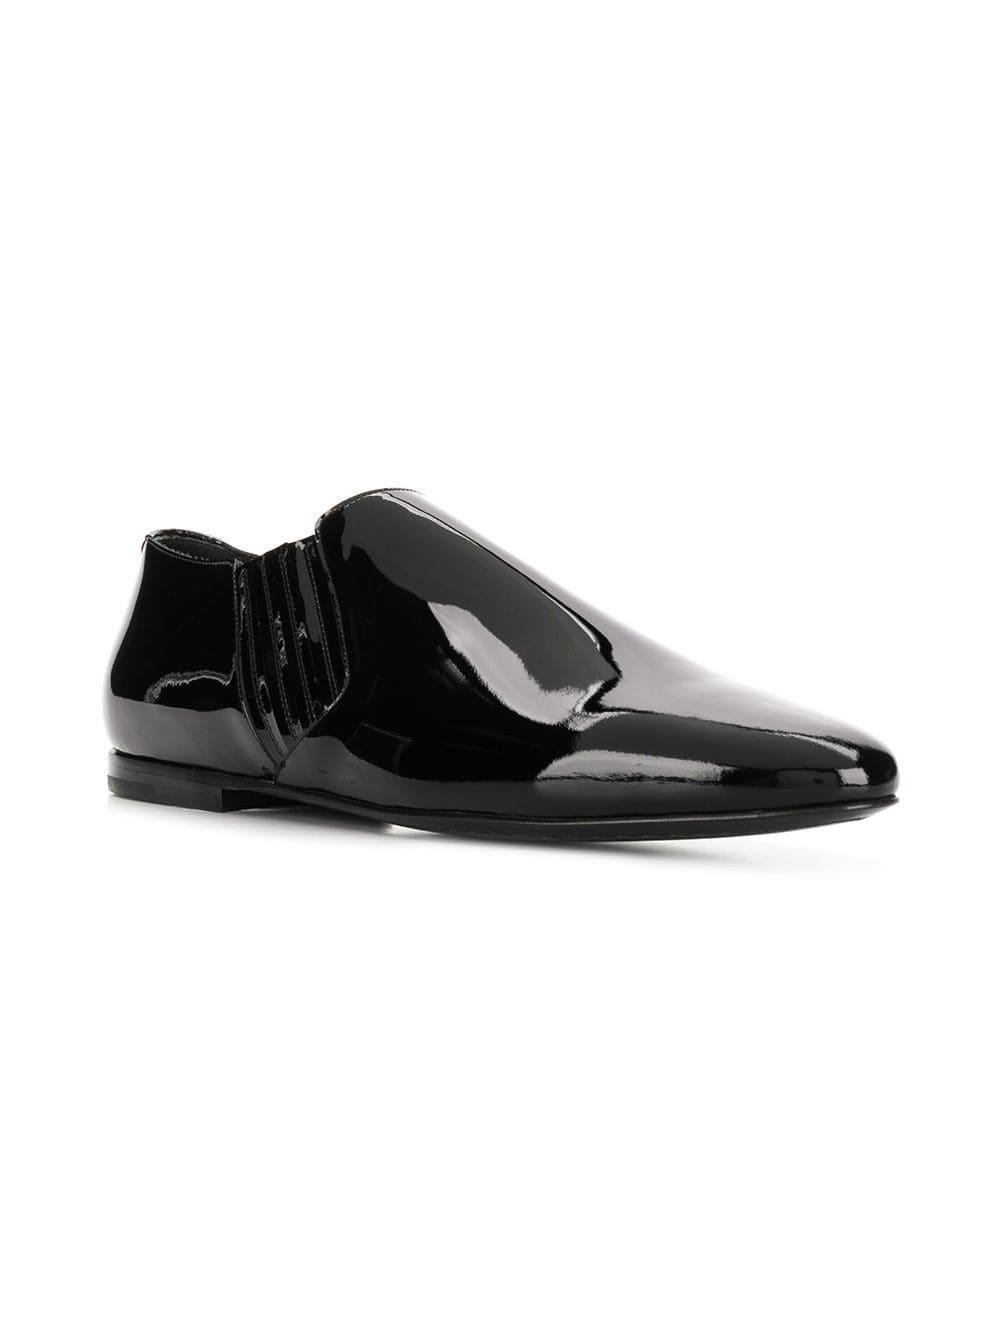 db301b54c62 Lyst - Saint Laurent Connor Cropped Chelsea Boots in Black for Men